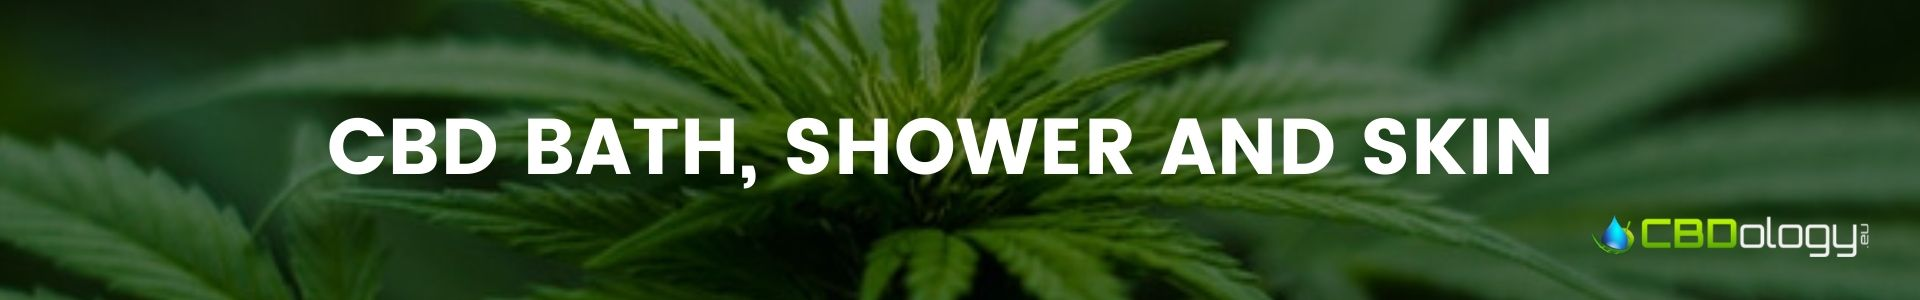 CBD Bath, Shower & Skincare